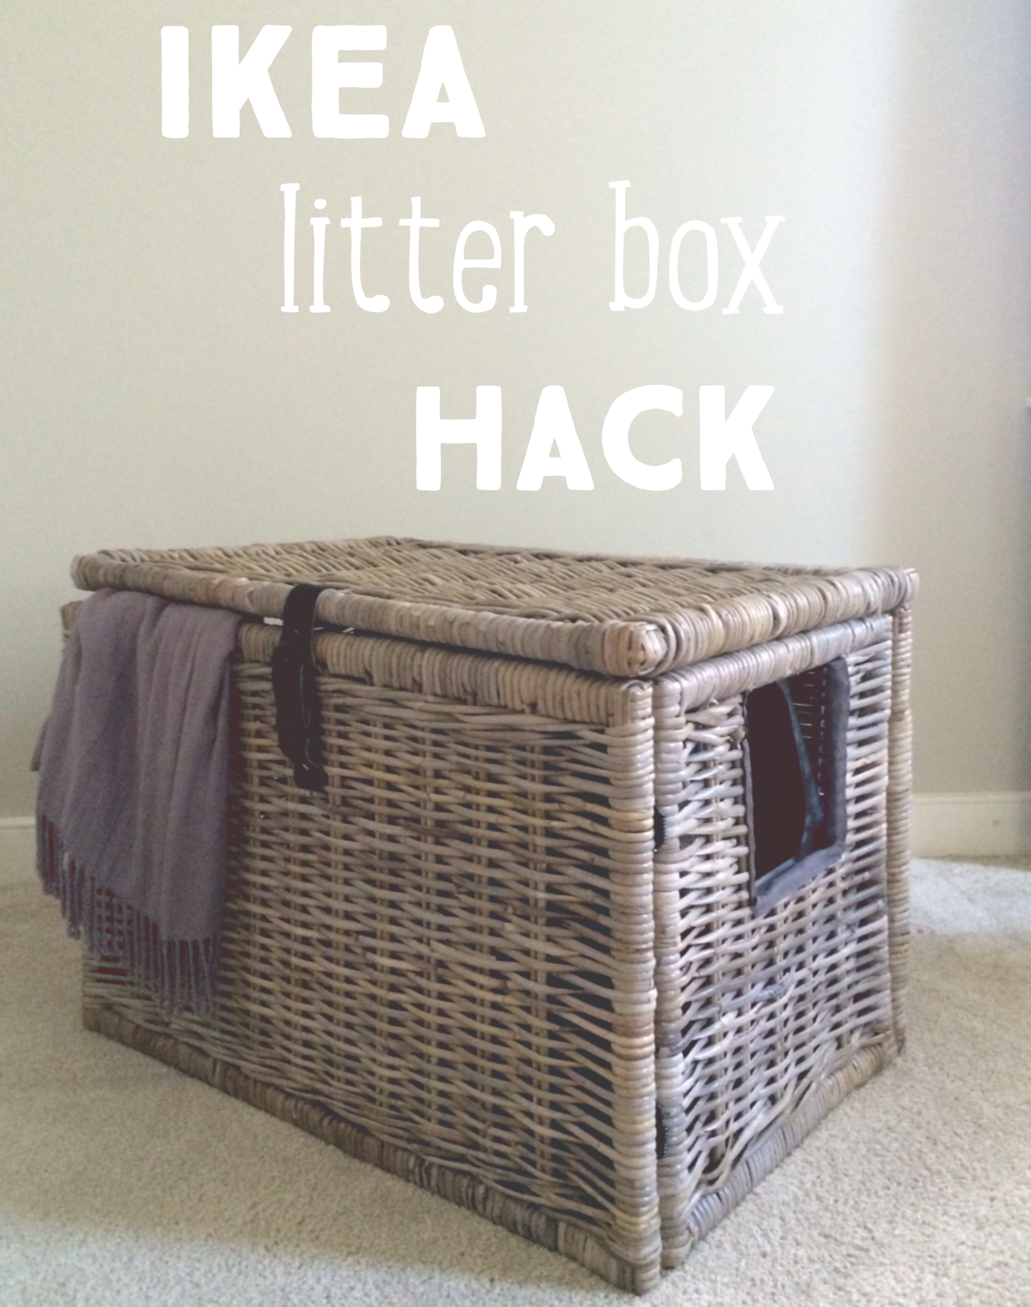 super easy ikea hack turn wicker chest into a secret litter box hide out ikea pinterest. Black Bedroom Furniture Sets. Home Design Ideas